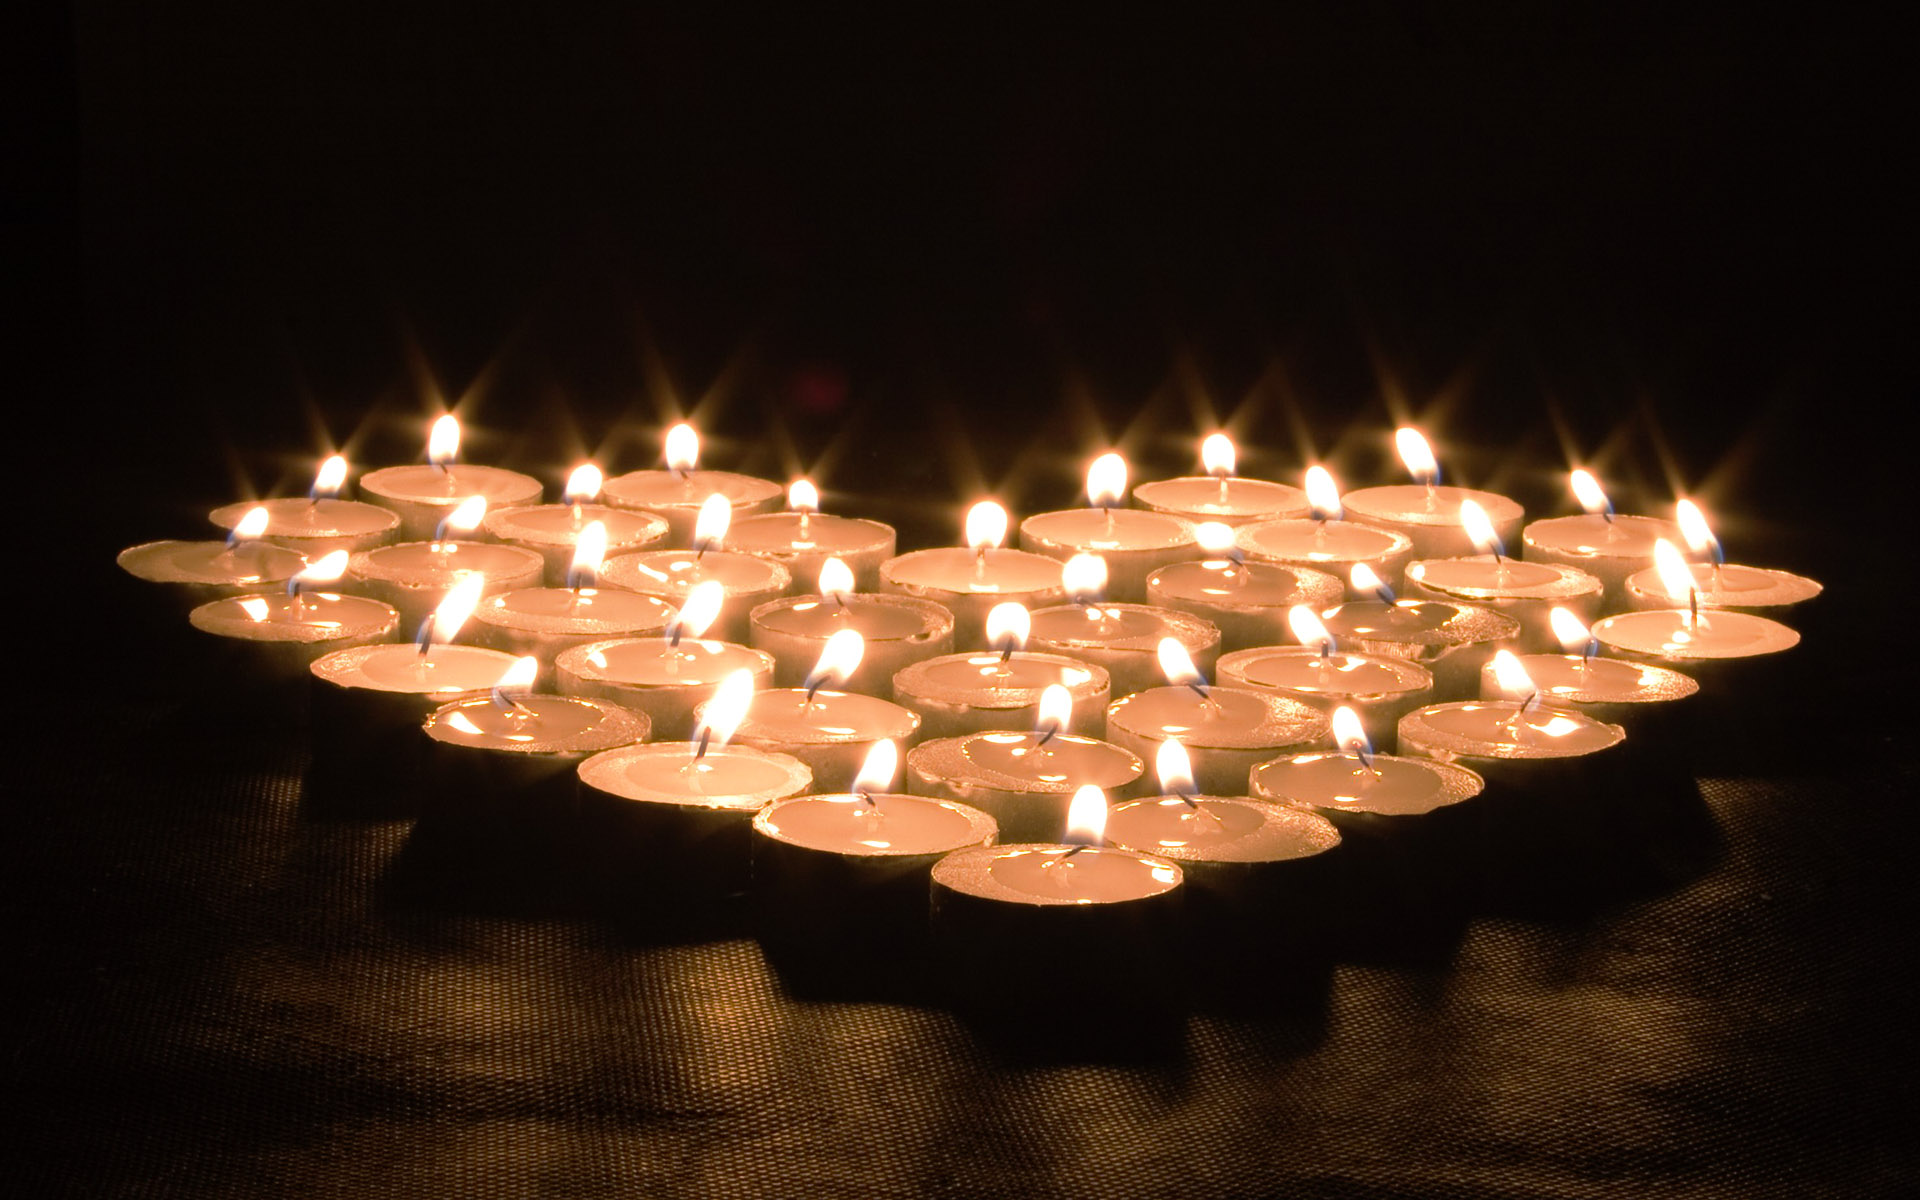 Candle wallpaper 7761